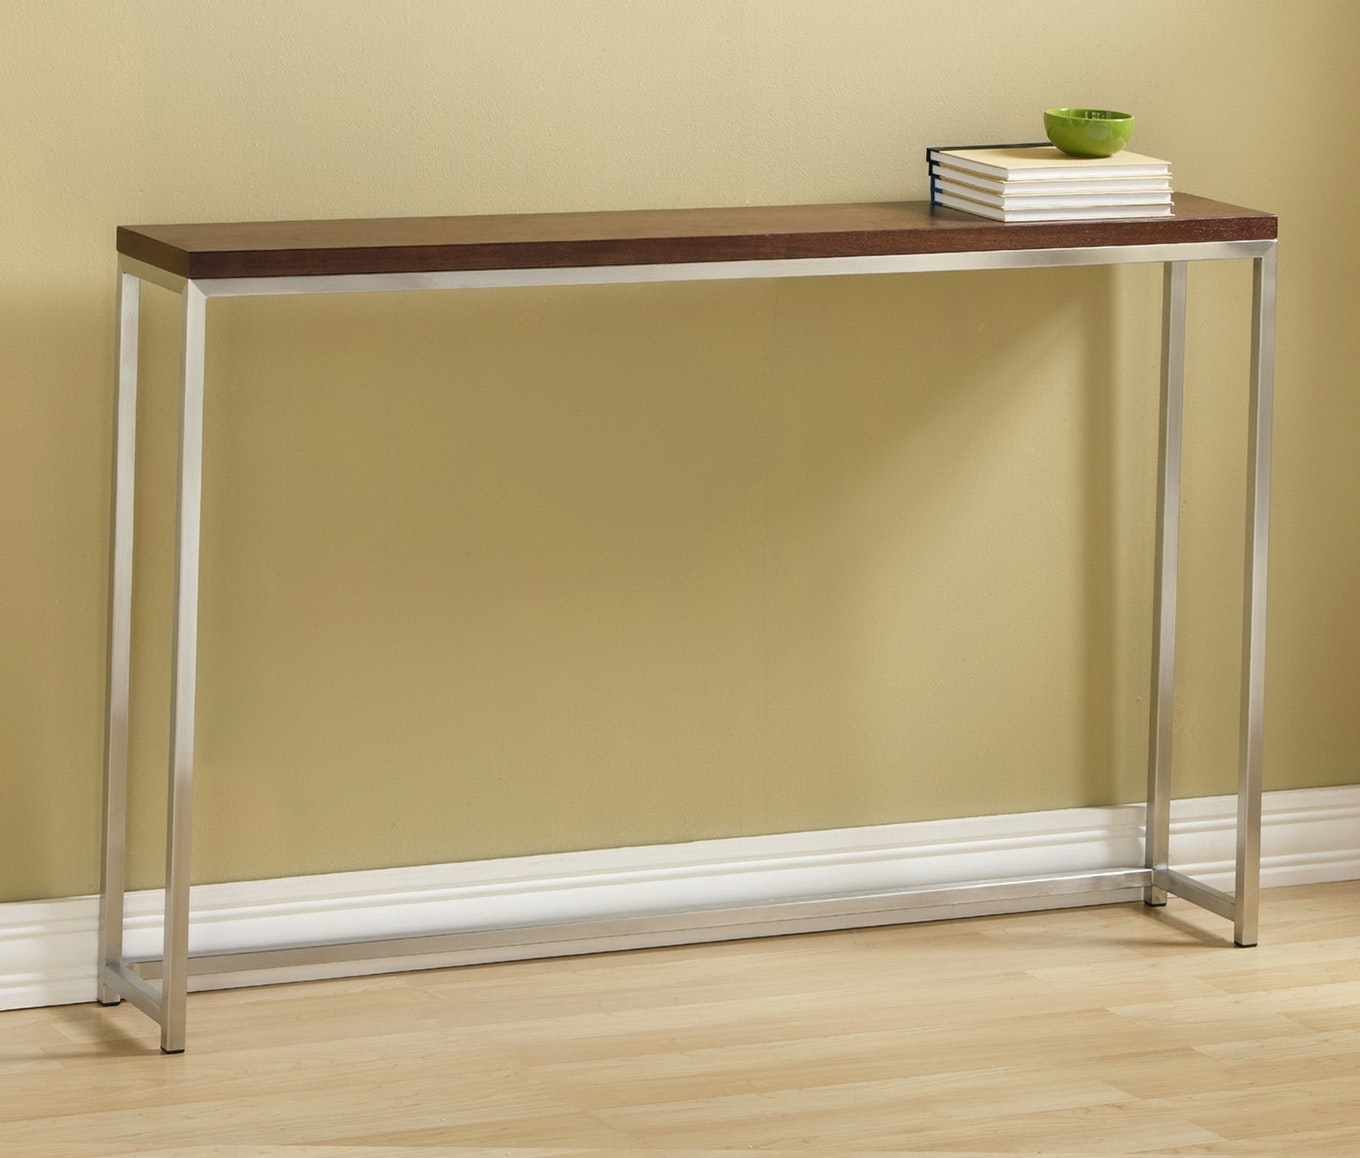 Long Slim Sofa Table | Tehranmix Decoration Intended For Slim Sofa Tables (Image 11 of 20)